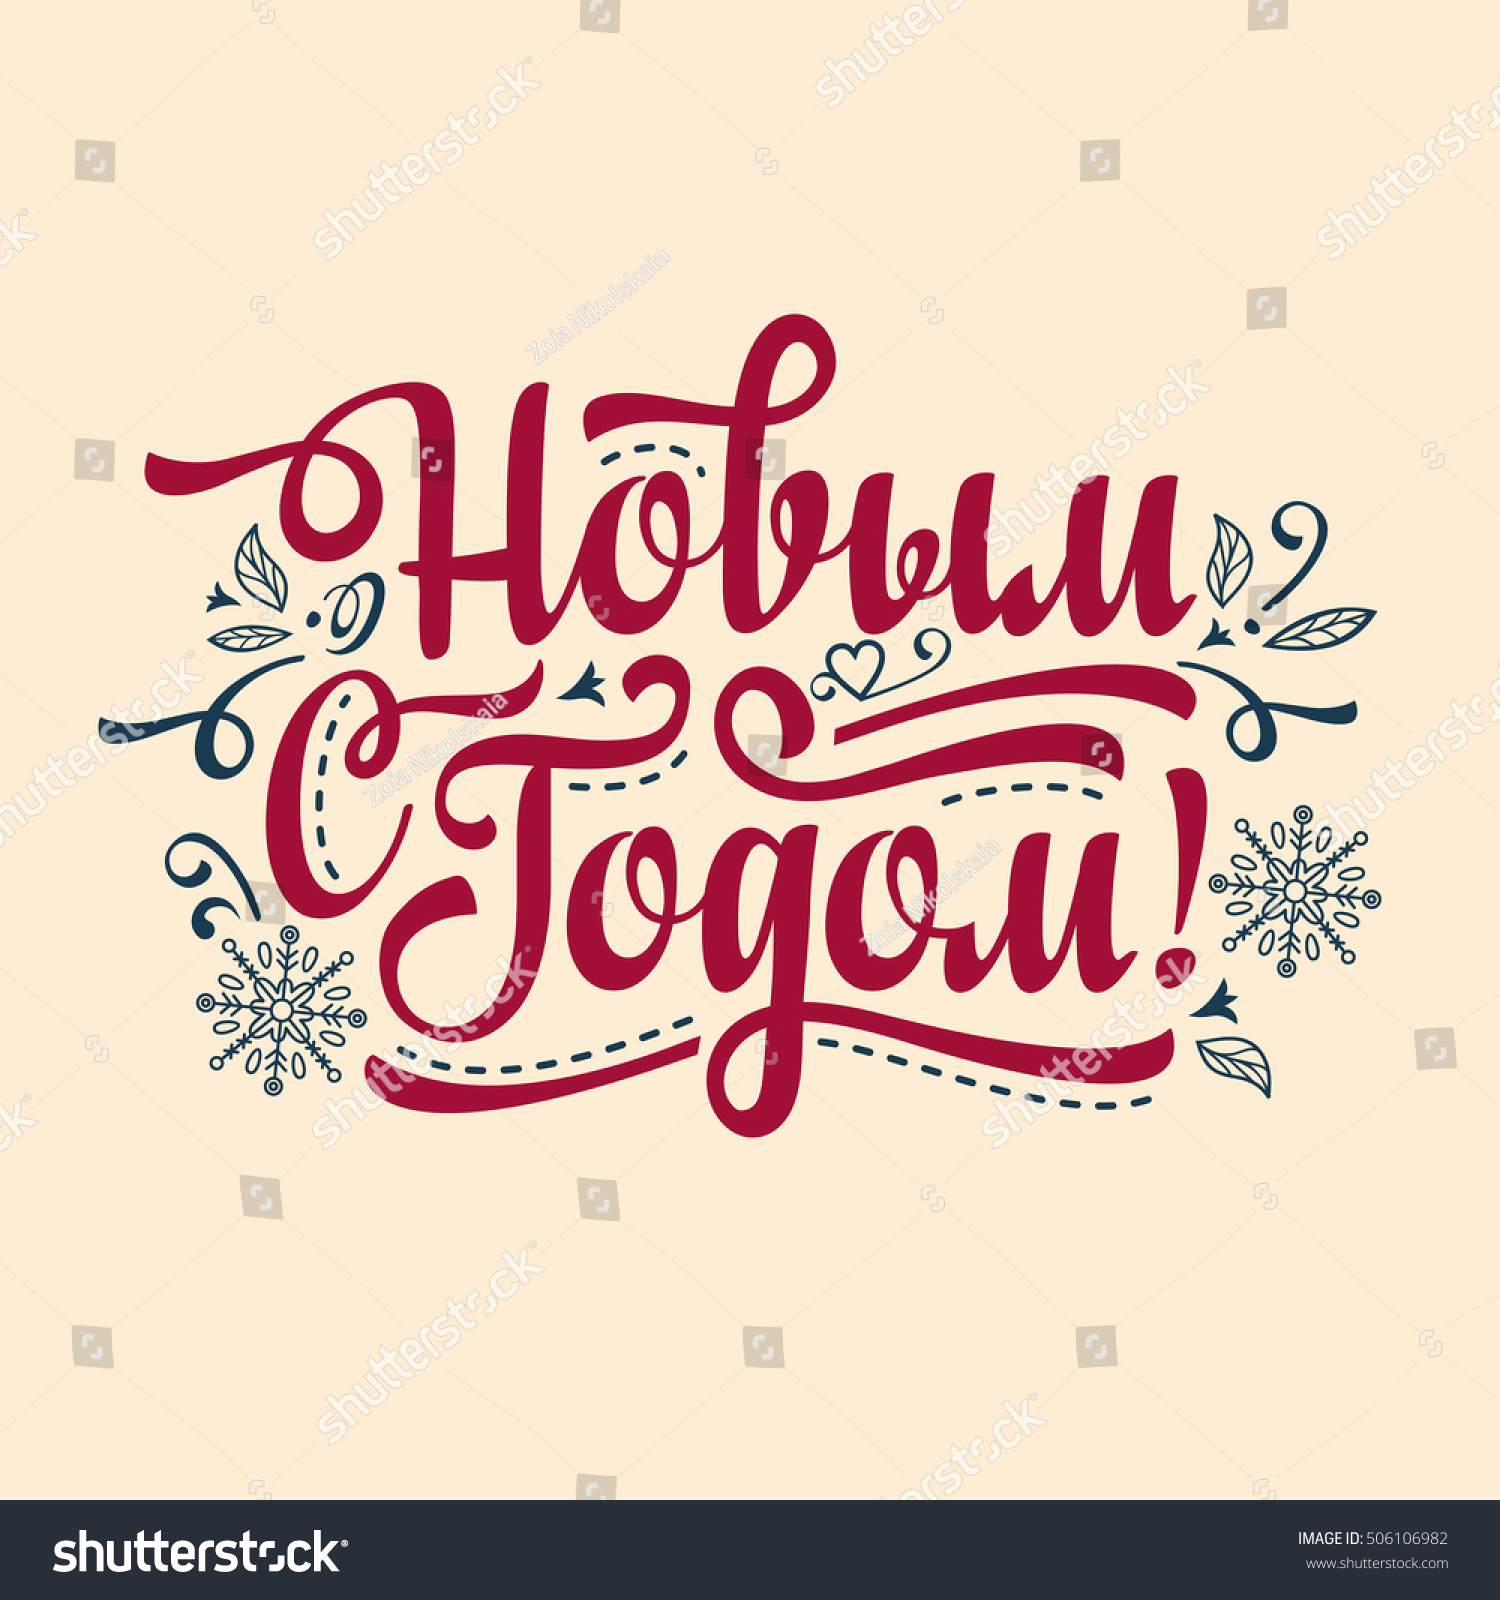 New Year Message. Lettering Composition With Phrase In Russian Language. Warm Wishes For Happy Holidays In Cyrillic. English Translation: Happy ...